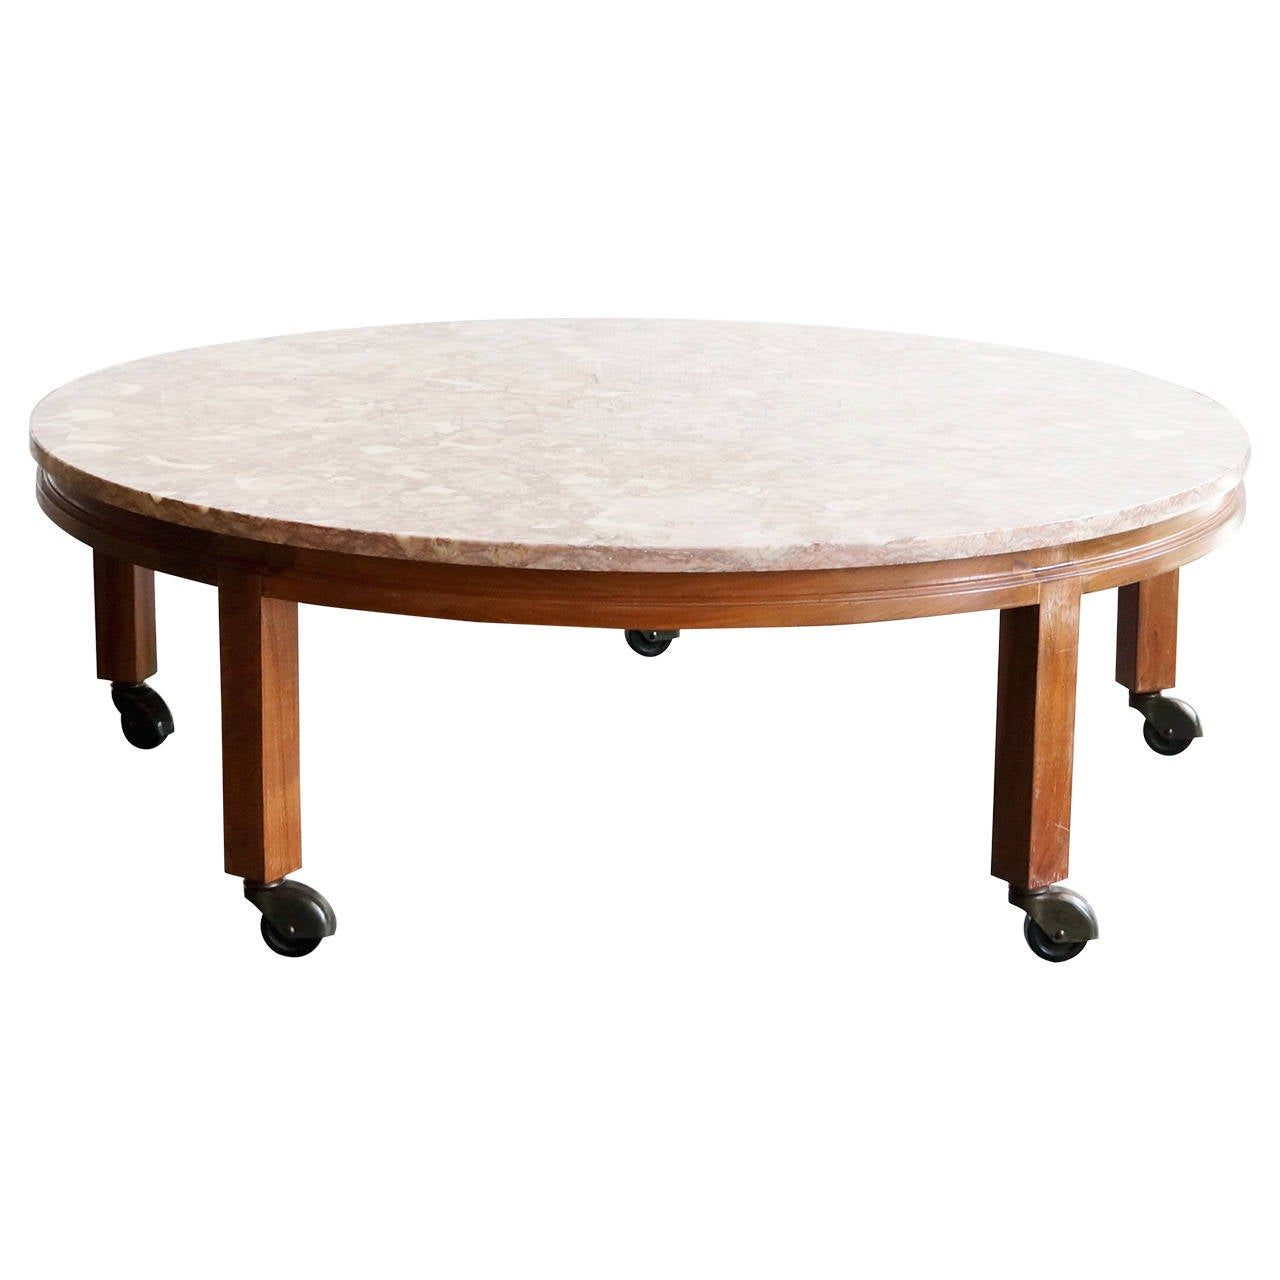 Vintage pink marble and walnut round coffee table at 1stdibs Round marble coffee tables